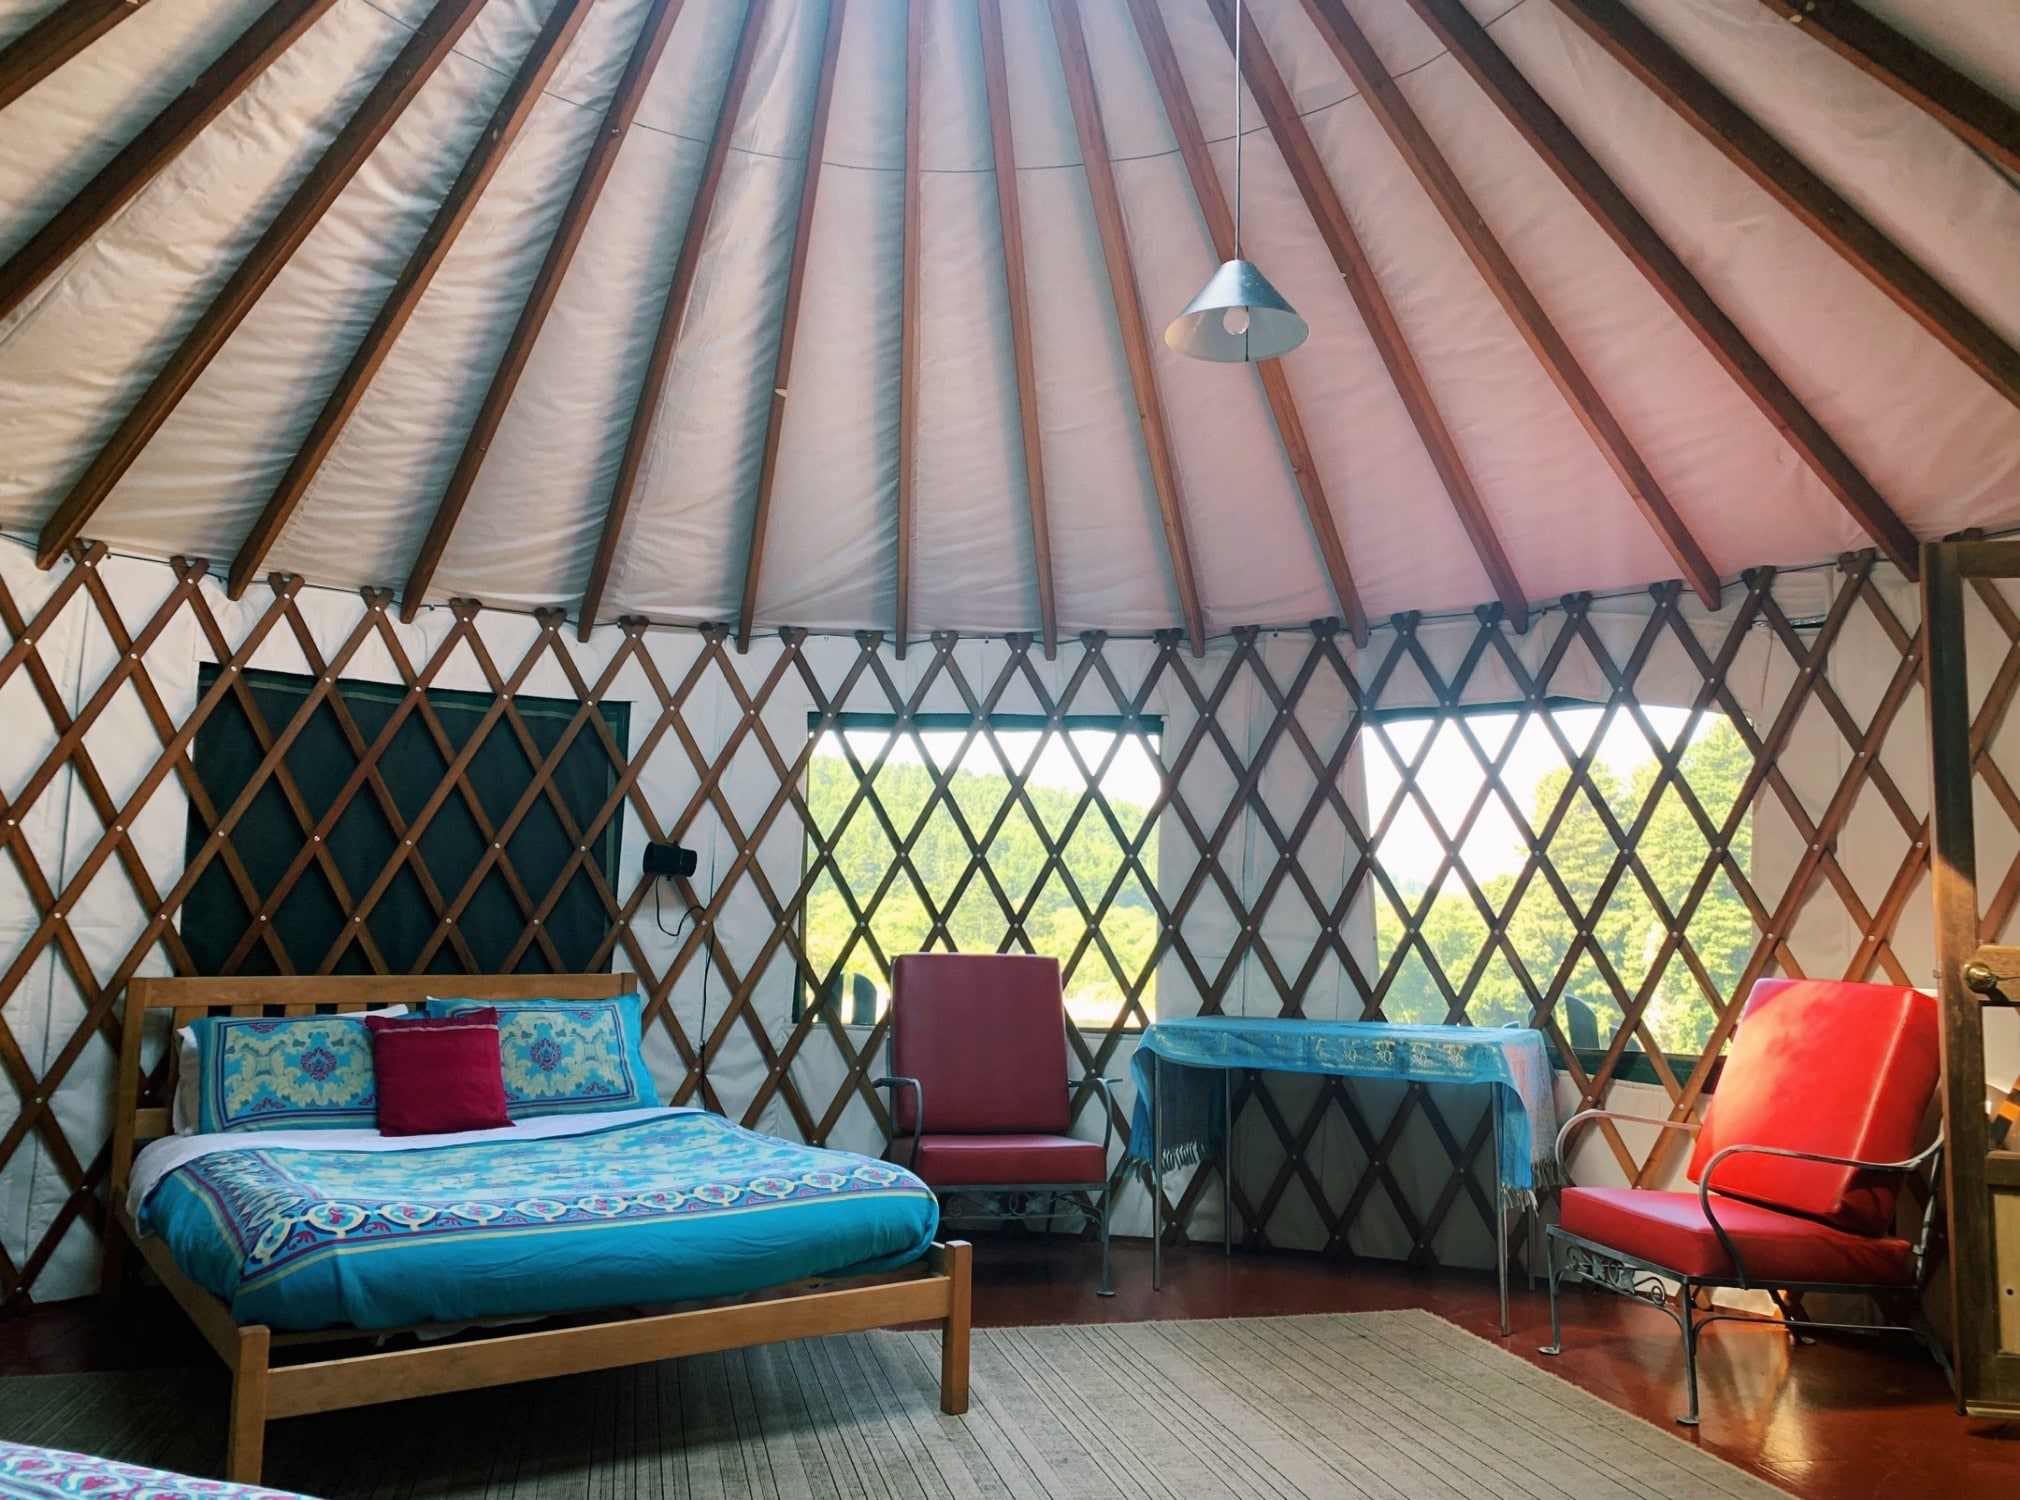 Inside of Yurt by Abby Stoner Oz Farm